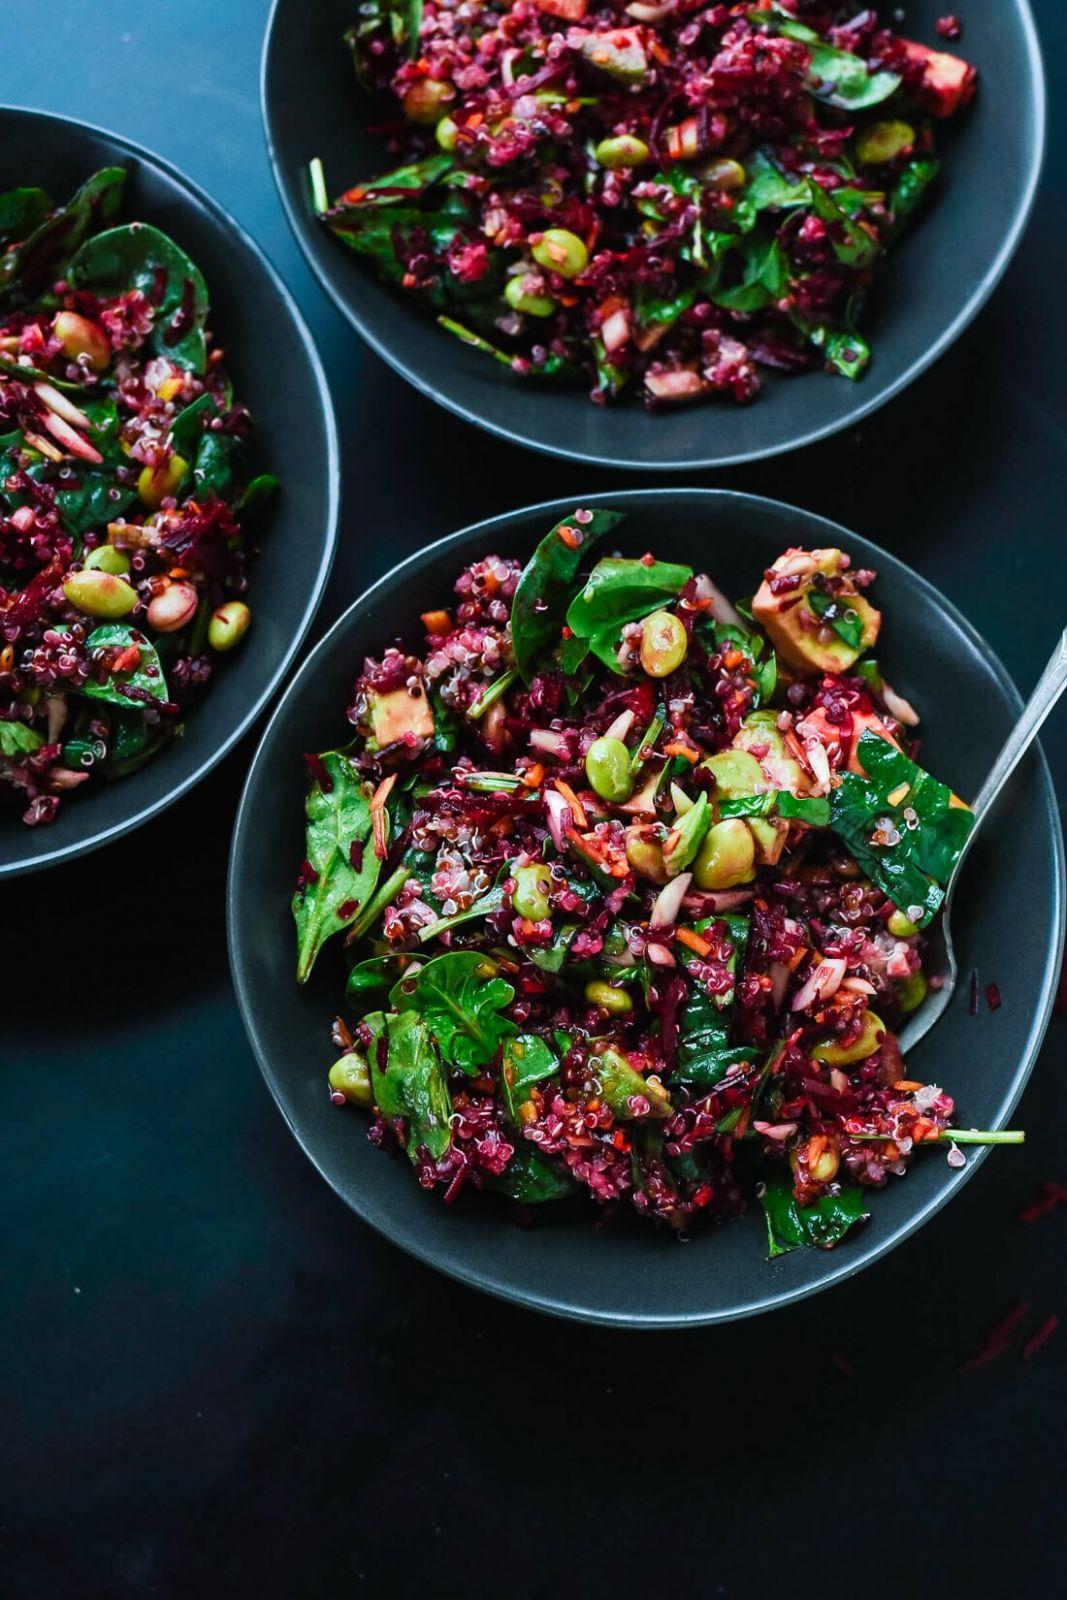 Colorful Beet Salad with Carrot, Quinoa & Spinach - Salad Recipes Raw